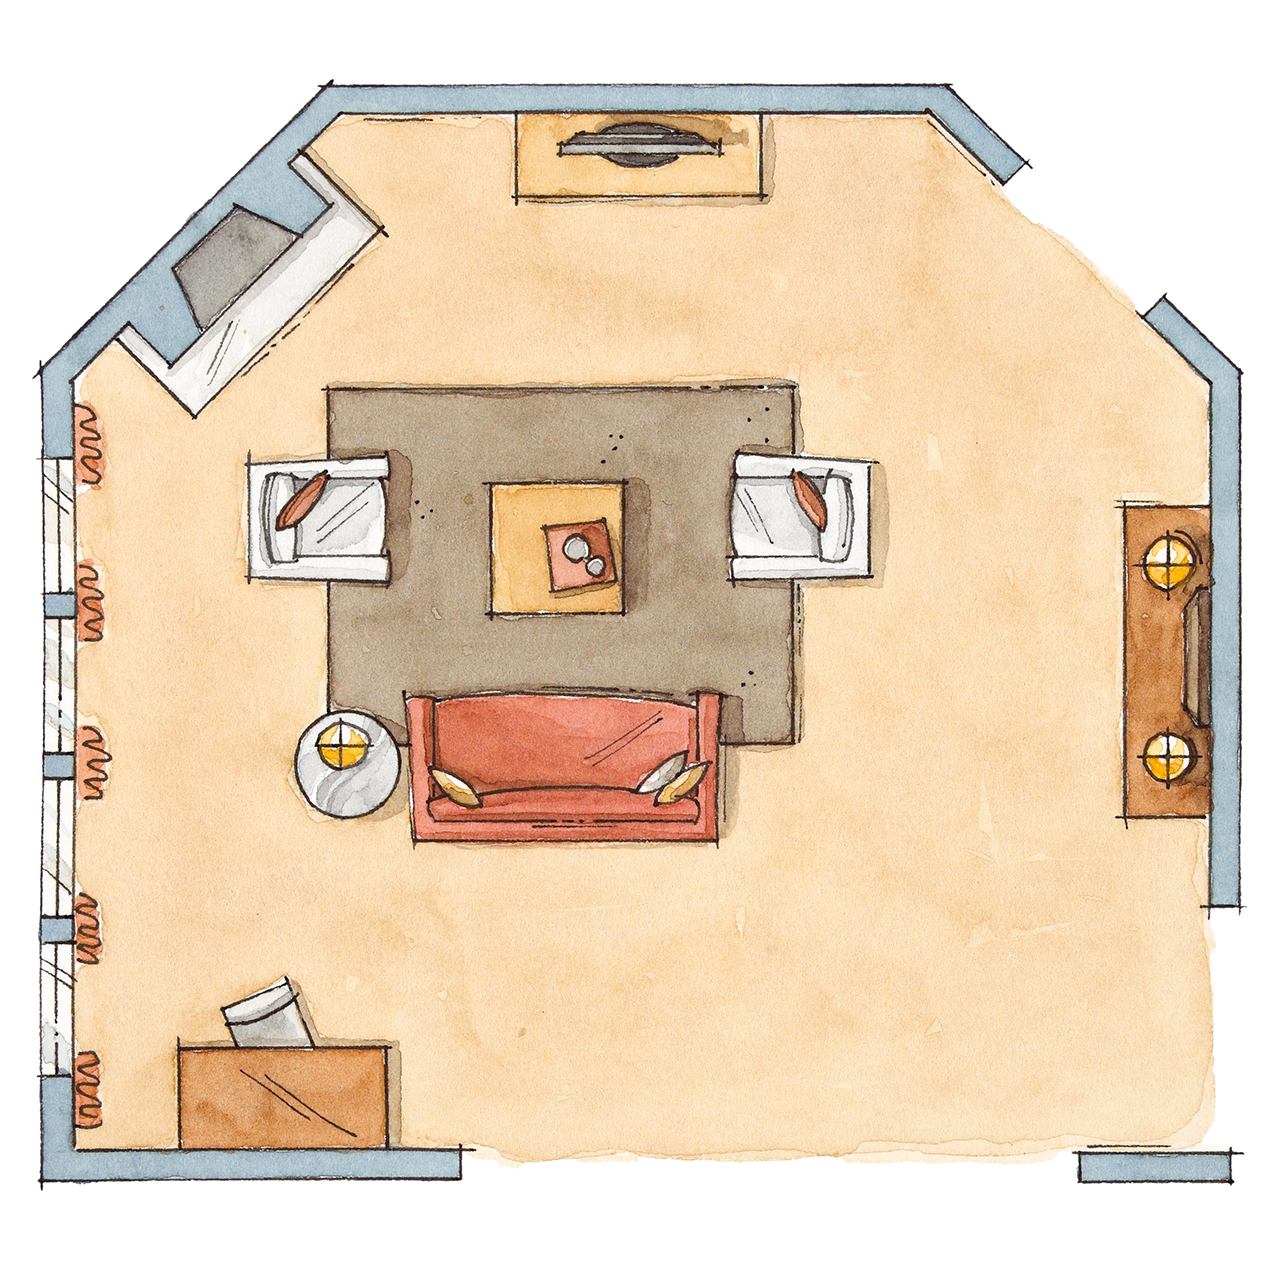 floor plan of irregularly shaped room with furniture